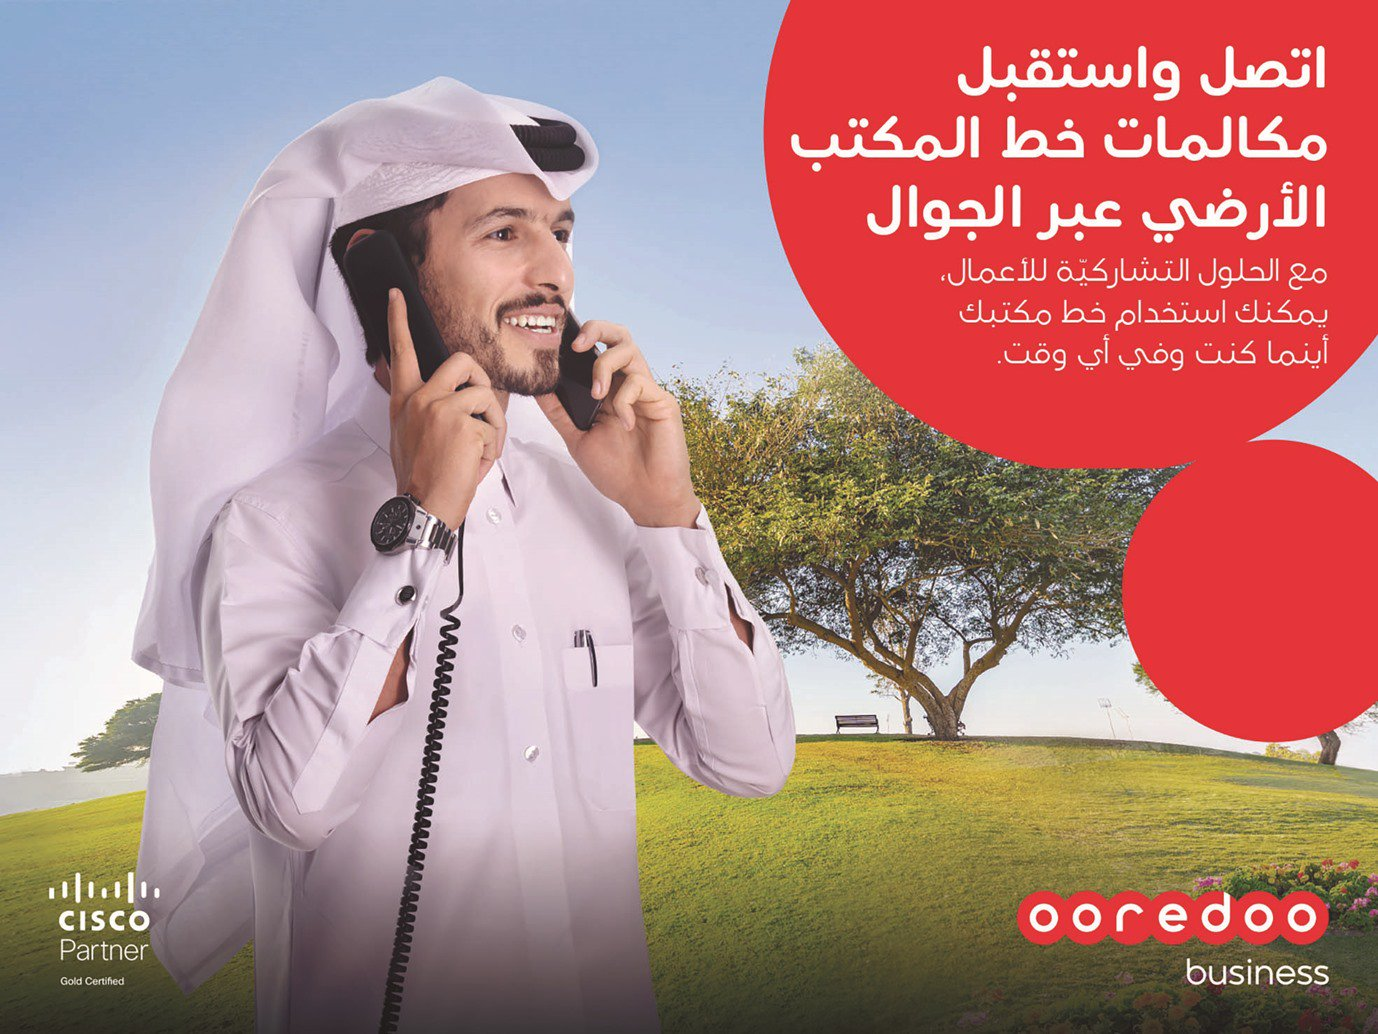 Ooredoo transforming businesses with unified communications solutions